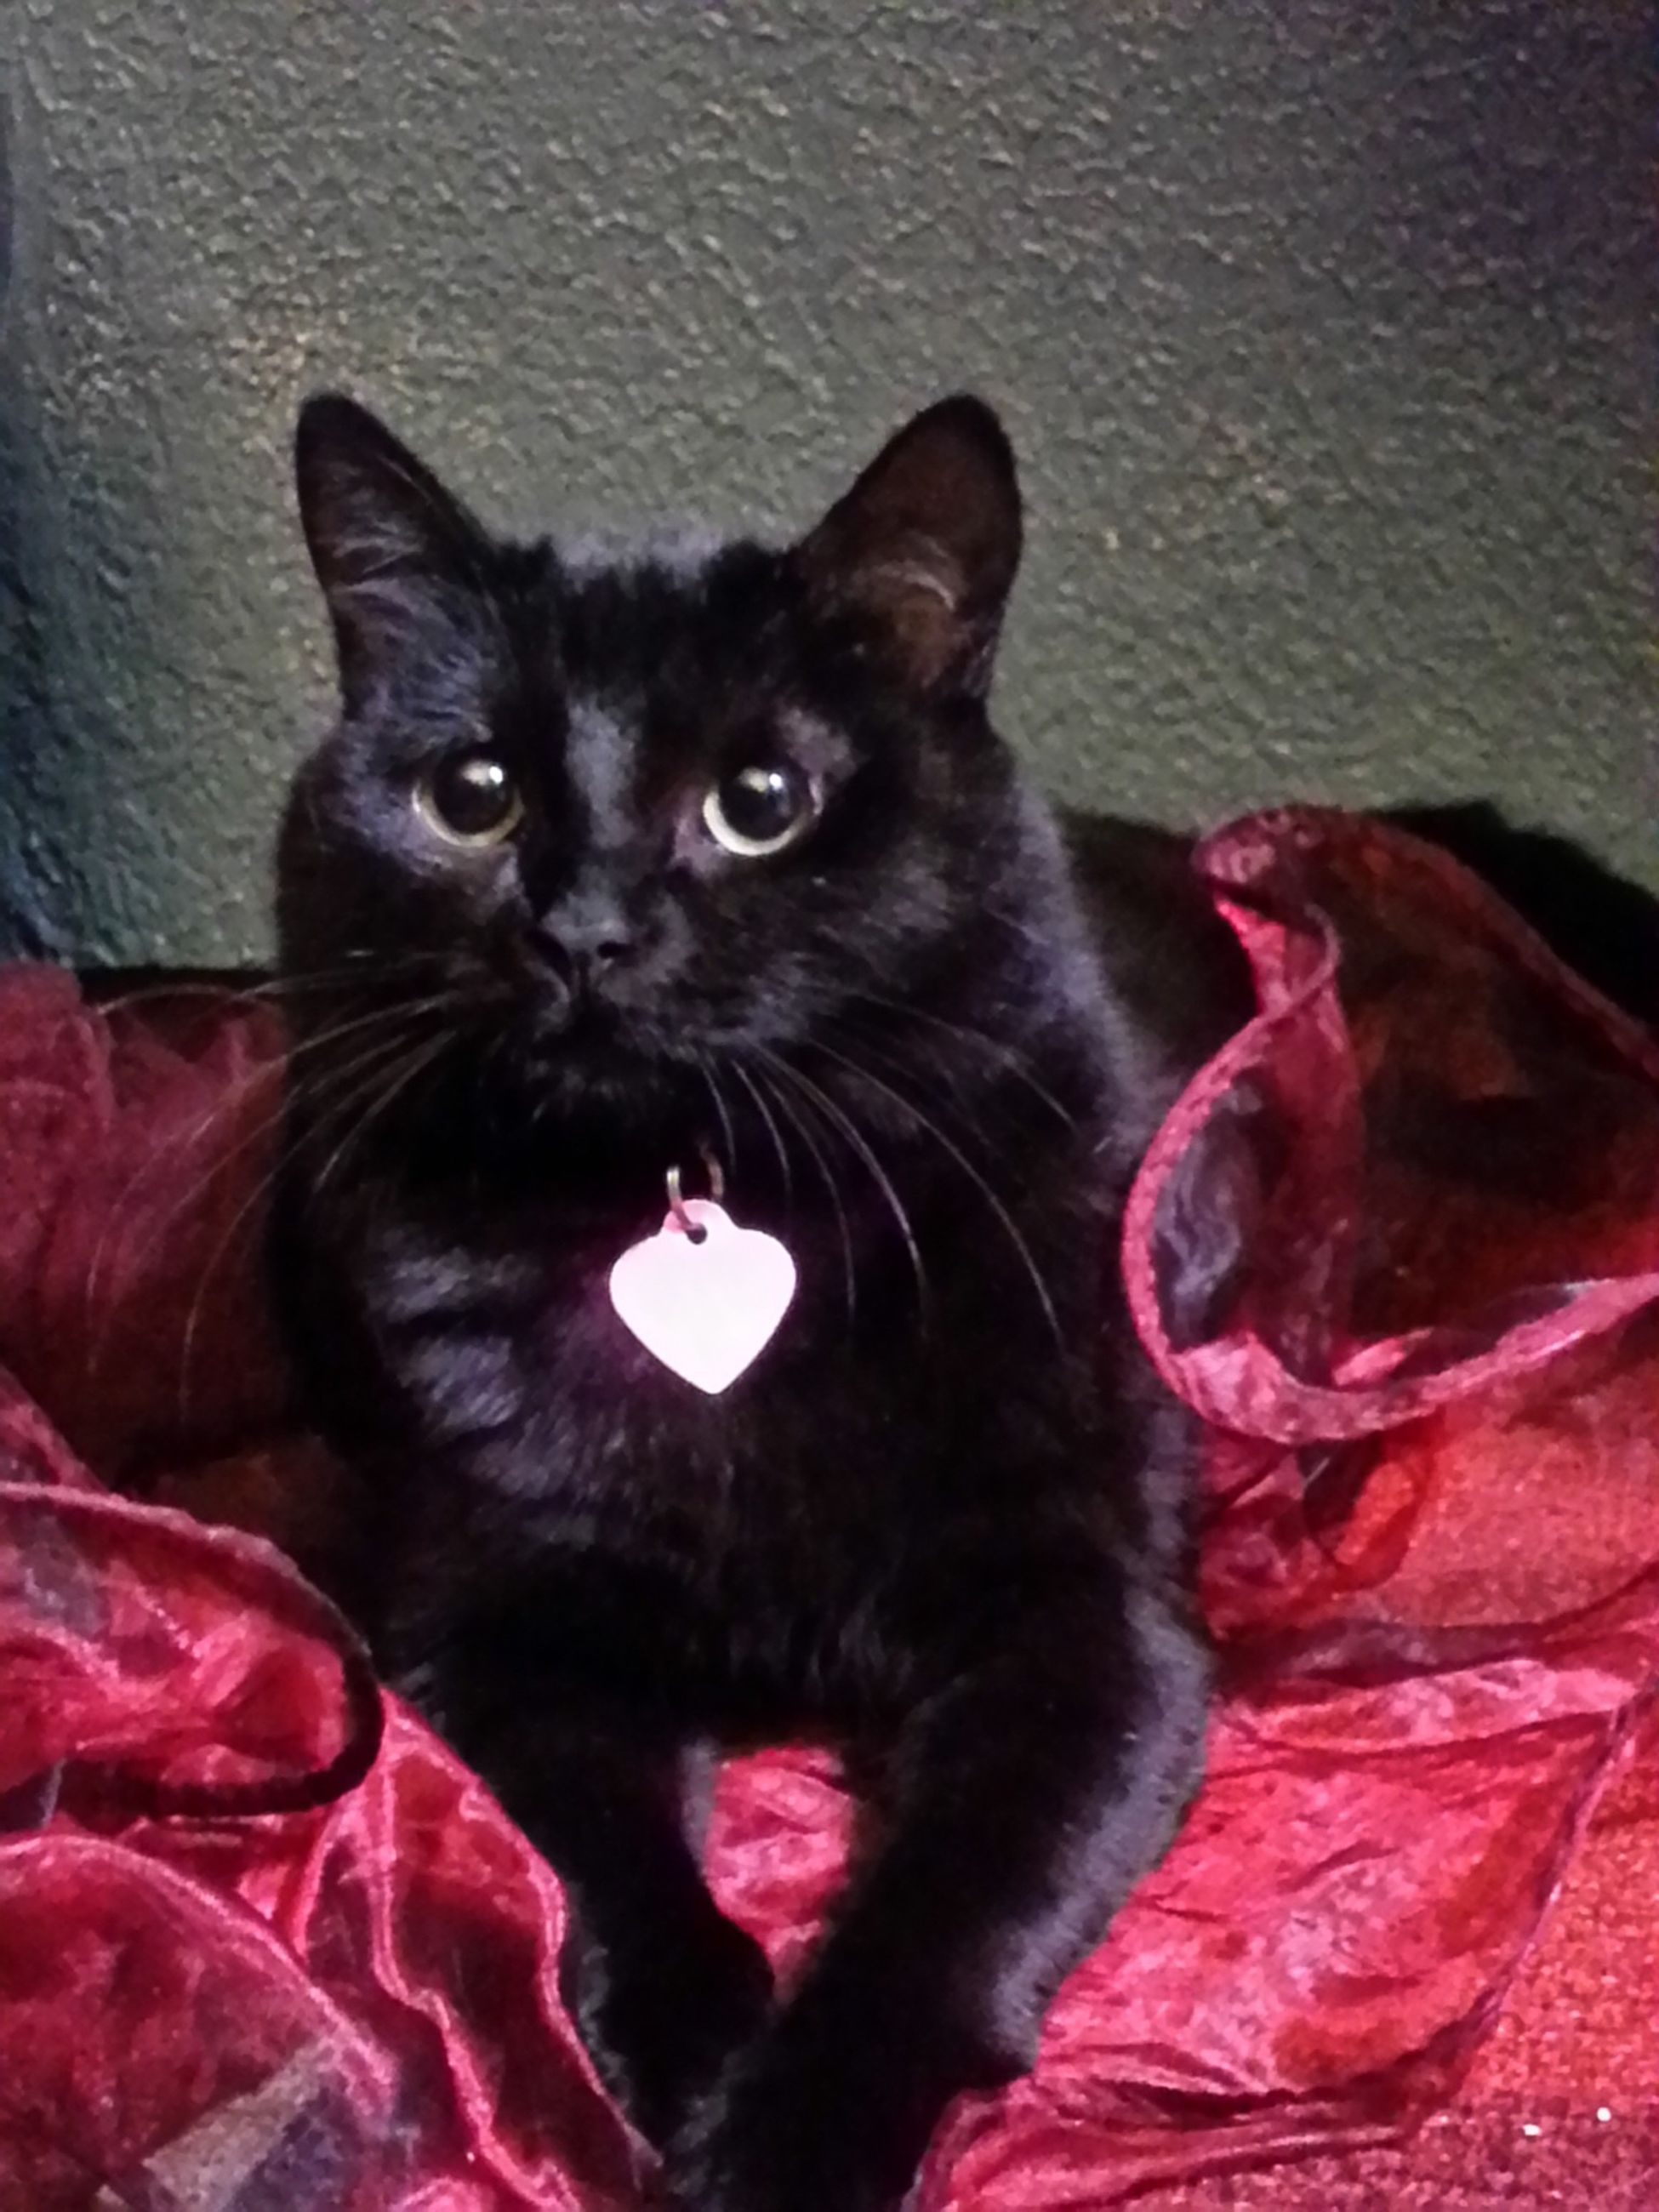 indoors, pets, domestic animals, animal themes, domestic cat, one animal, mammal, cat, black color, looking at camera, portrait, feline, red, home interior, relaxation, bed, close-up, high angle view, sofa, whisker